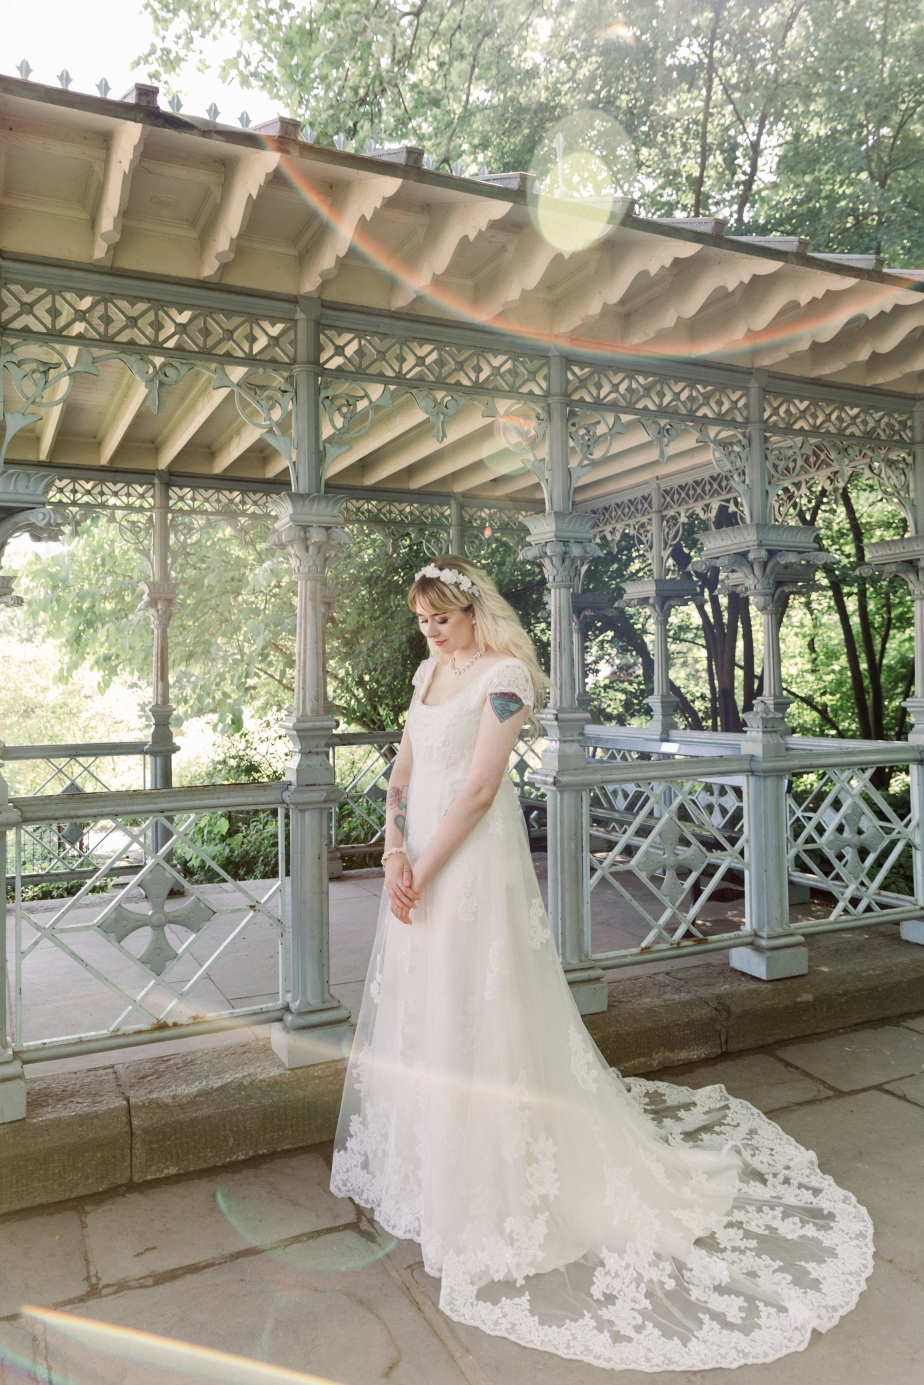 Central-park-wedding_AS-288